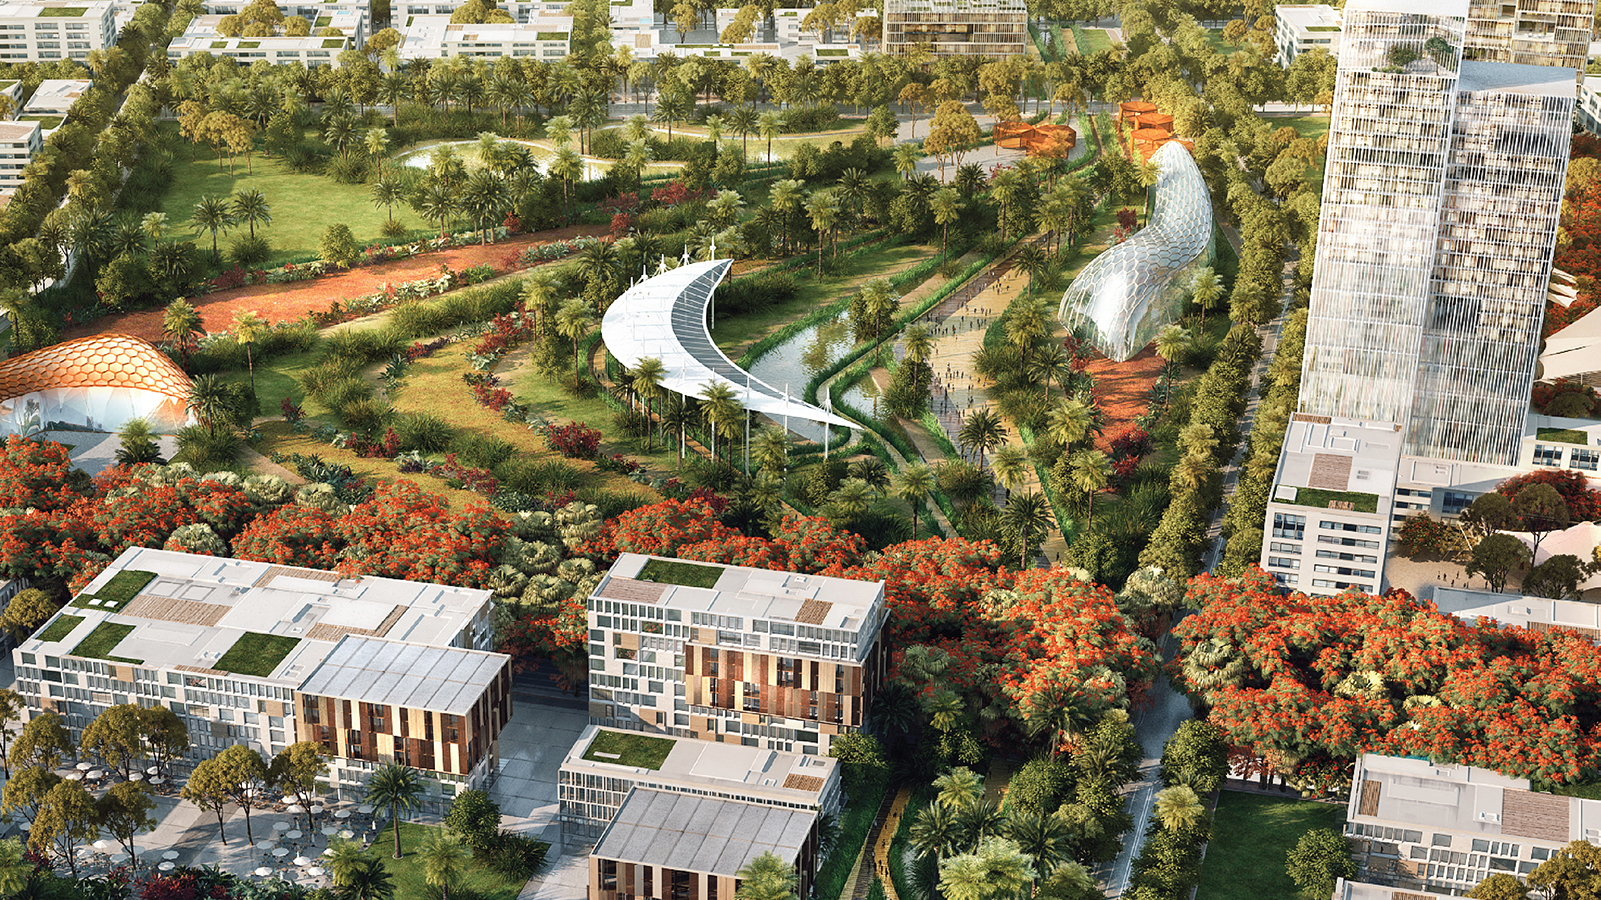 ...And Managed Green Space...